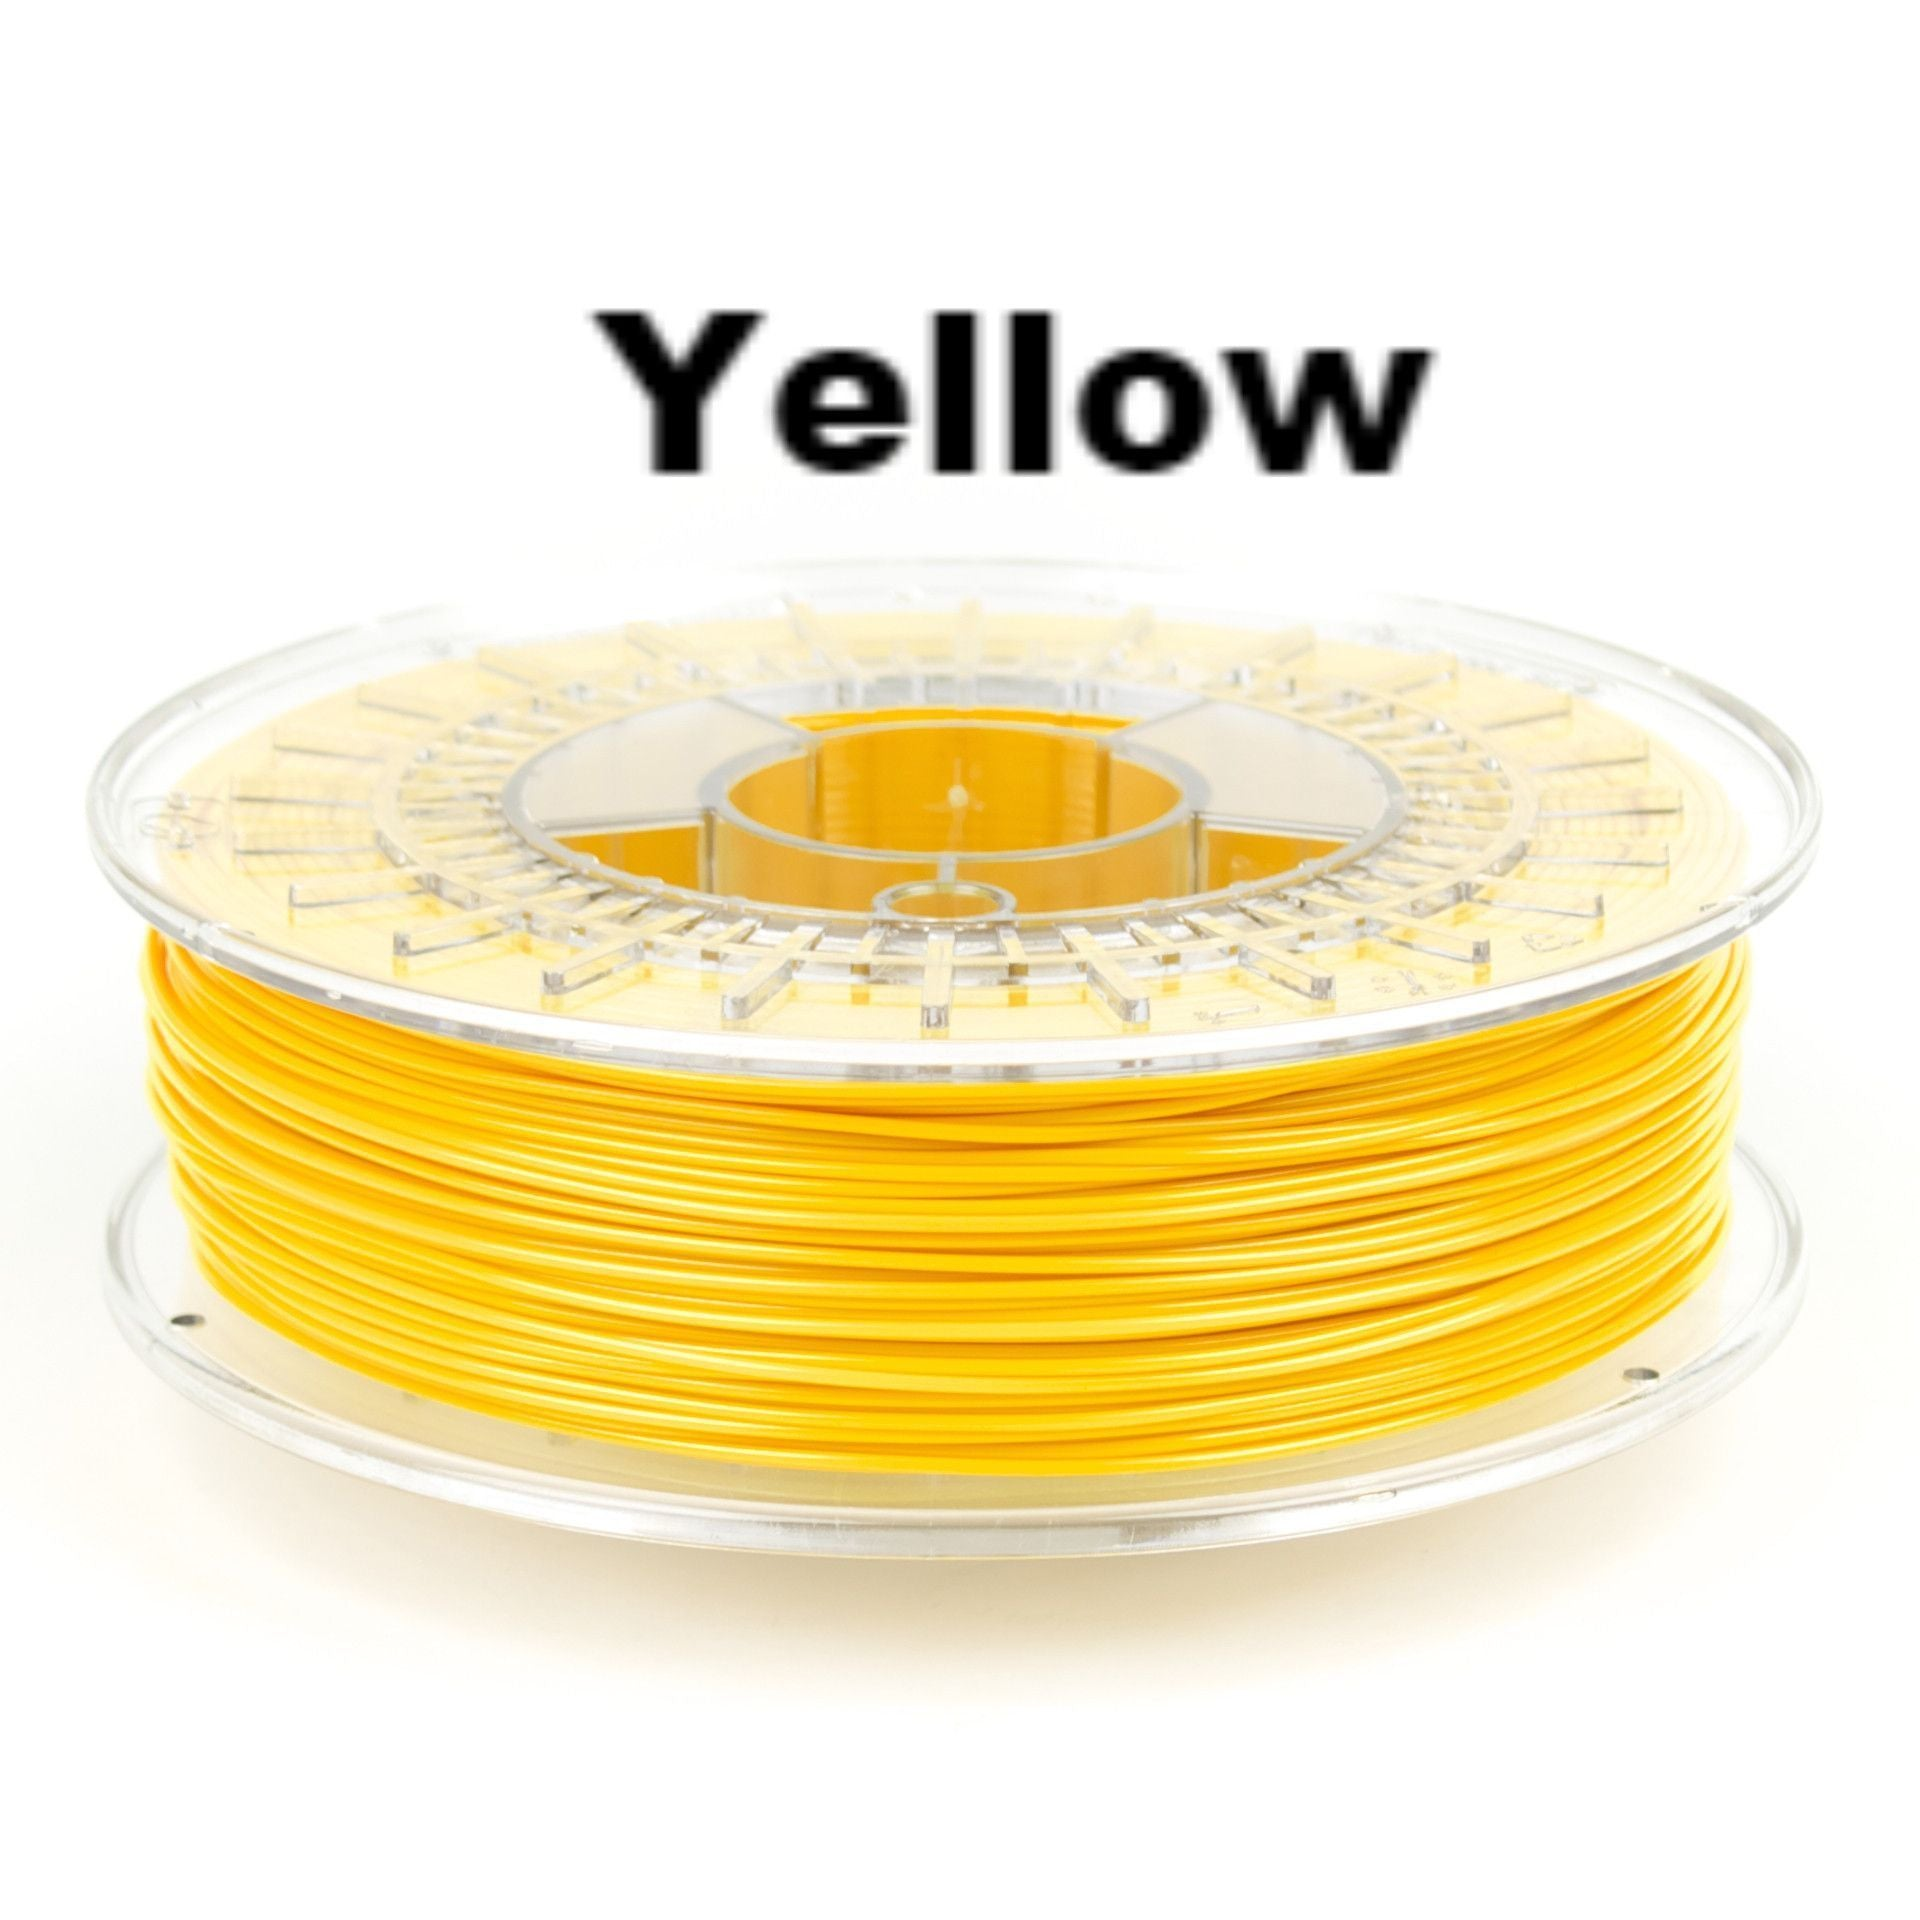 ColorFabb XT 2.85mm X 750g Yellow